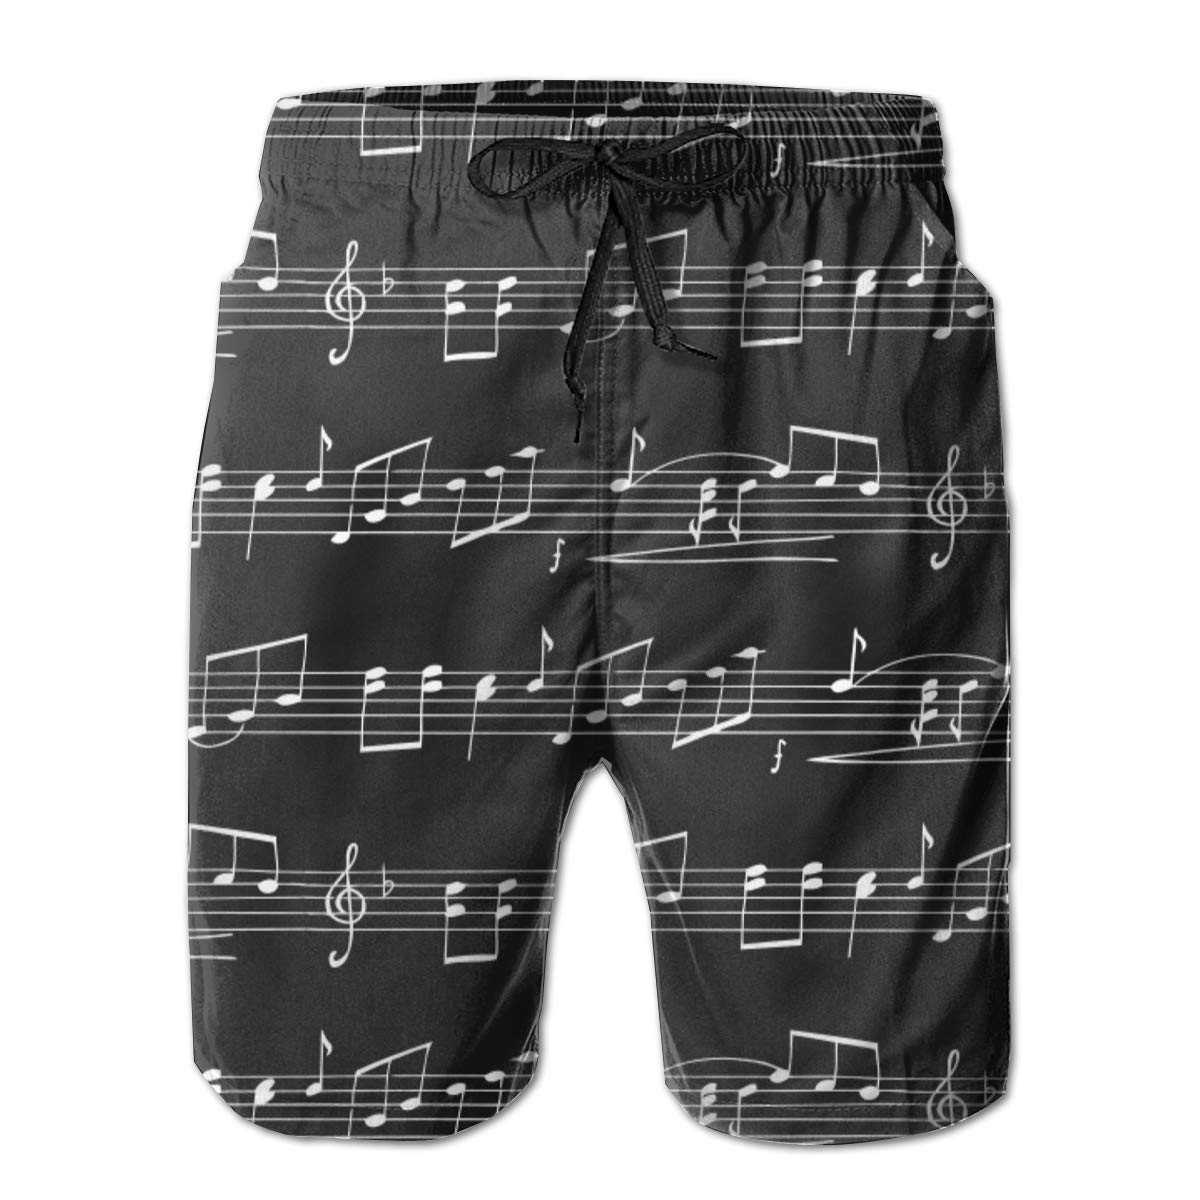 Musical Notes Summer Holiday Mesh Lining Swimwear Board Shorts with Pockets Hateone Mens Beach Shorts Quick Dry